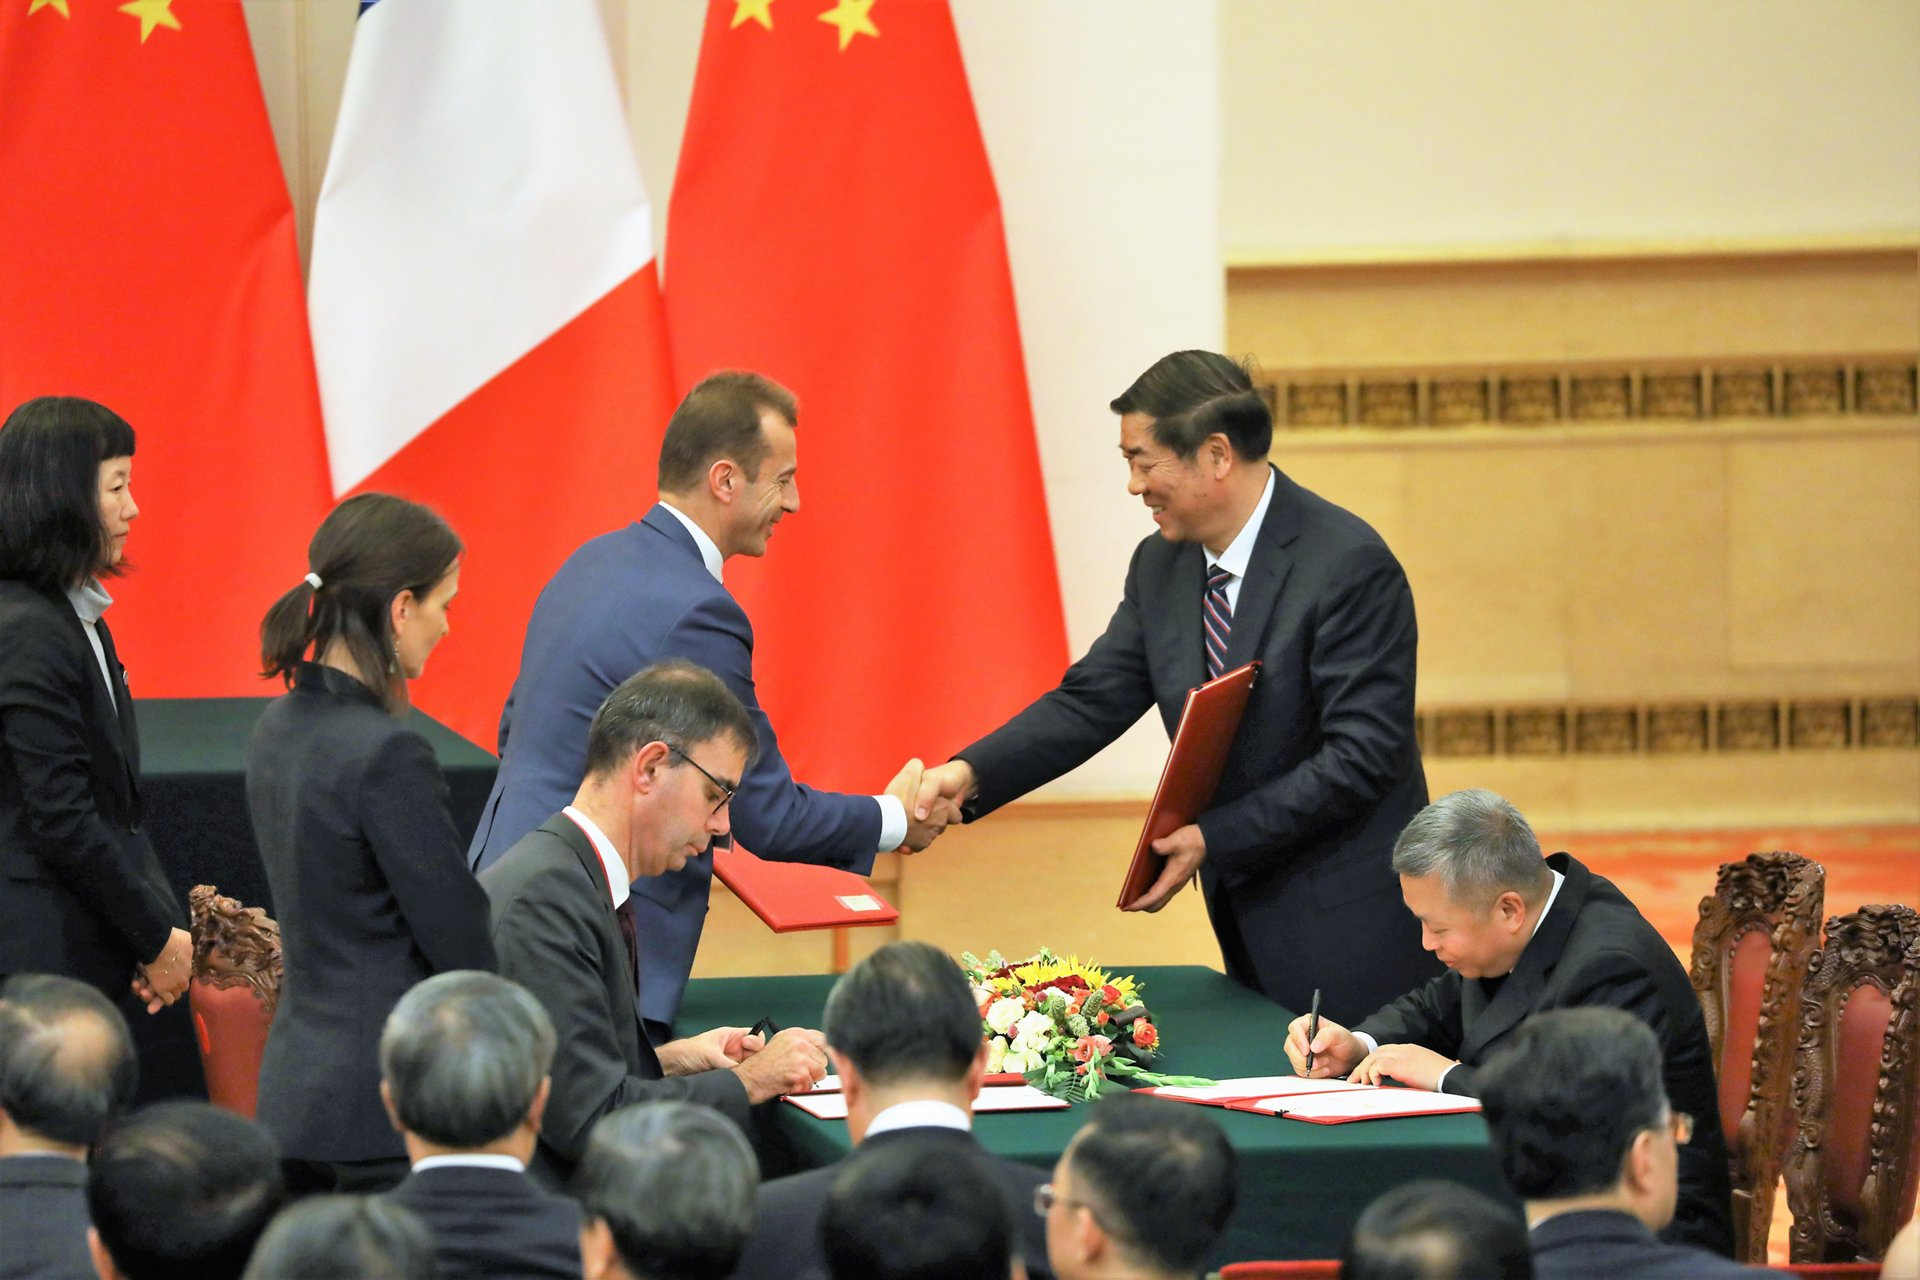 Airbus CEO Guillaume Faury shakes hands with Chinese National Development and Reform Commission President He Lifeng after the signing of an agreement at the Great Hall of People during French President Emmanuel Macron's official visit in Beijing on 6 November 2019